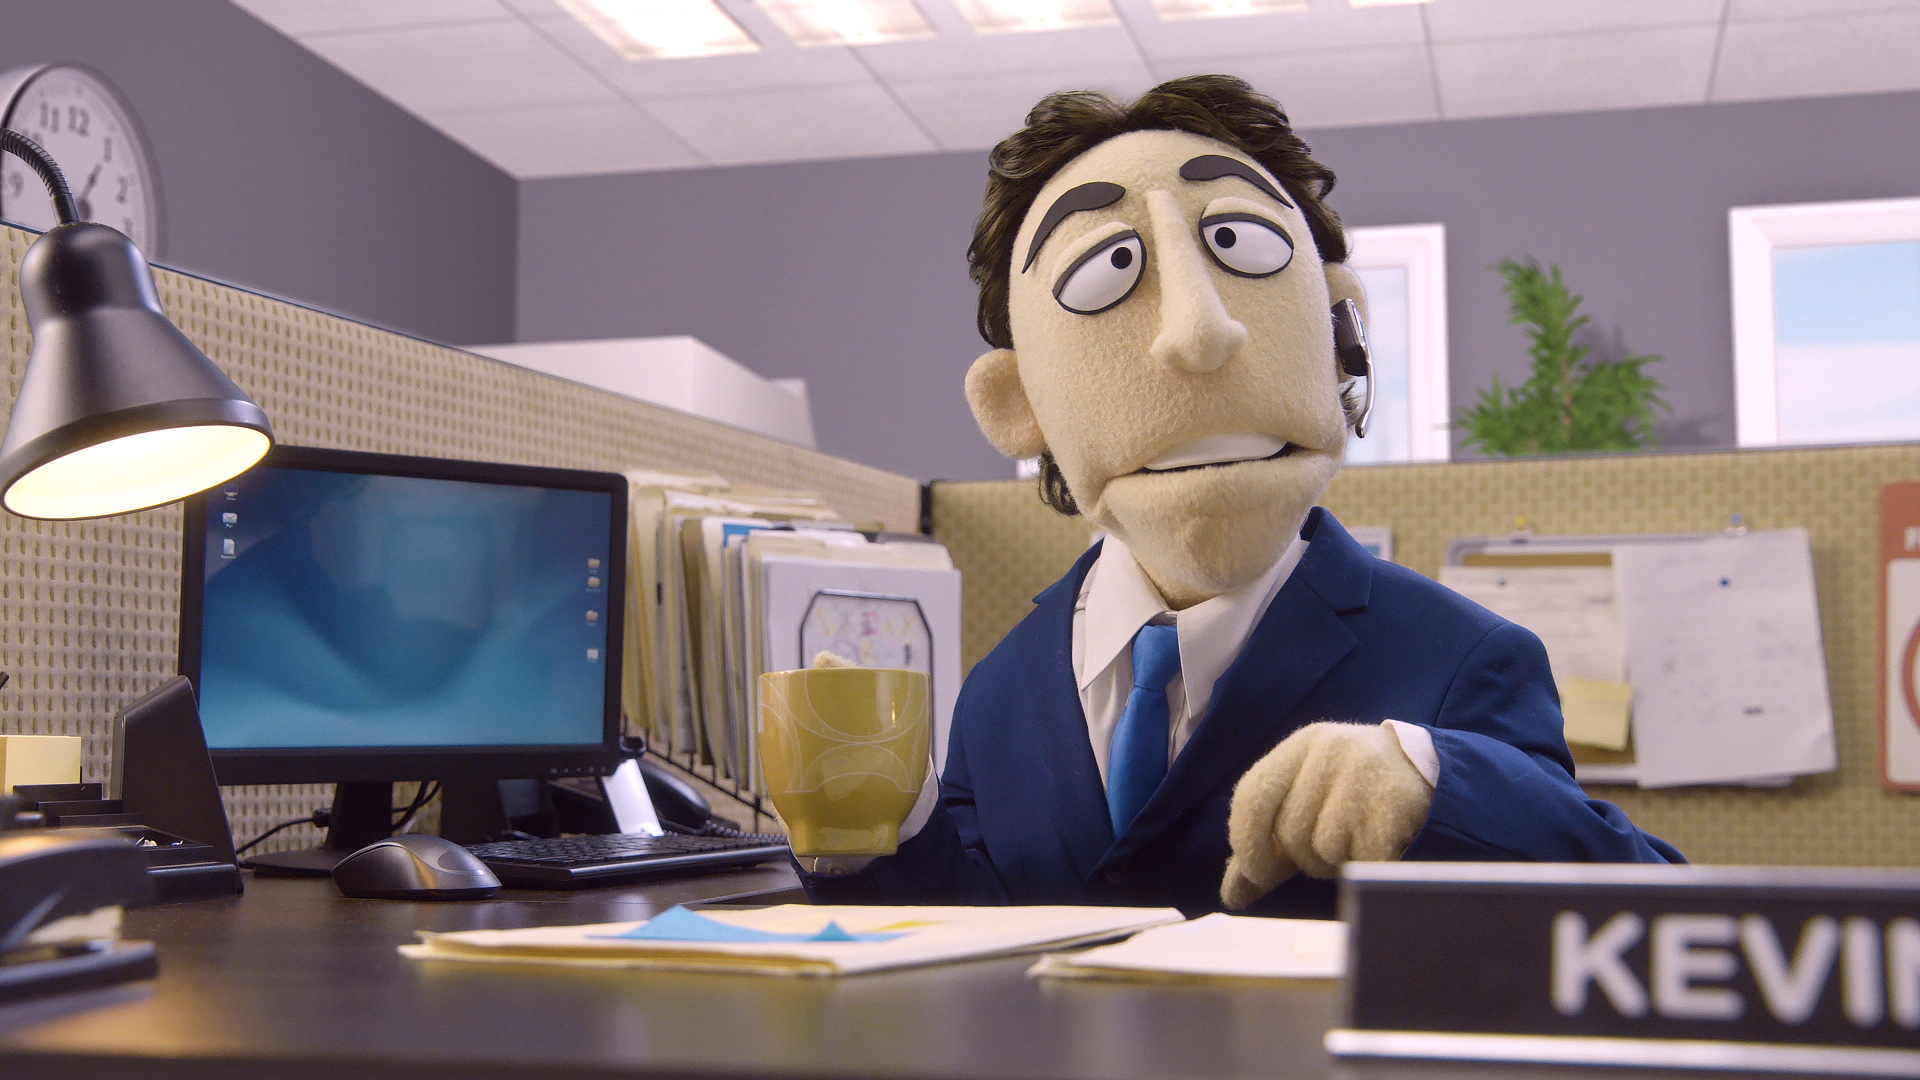 Kevin Nealon complains about his office mate Randall on Comedy Central's Crank Yankers